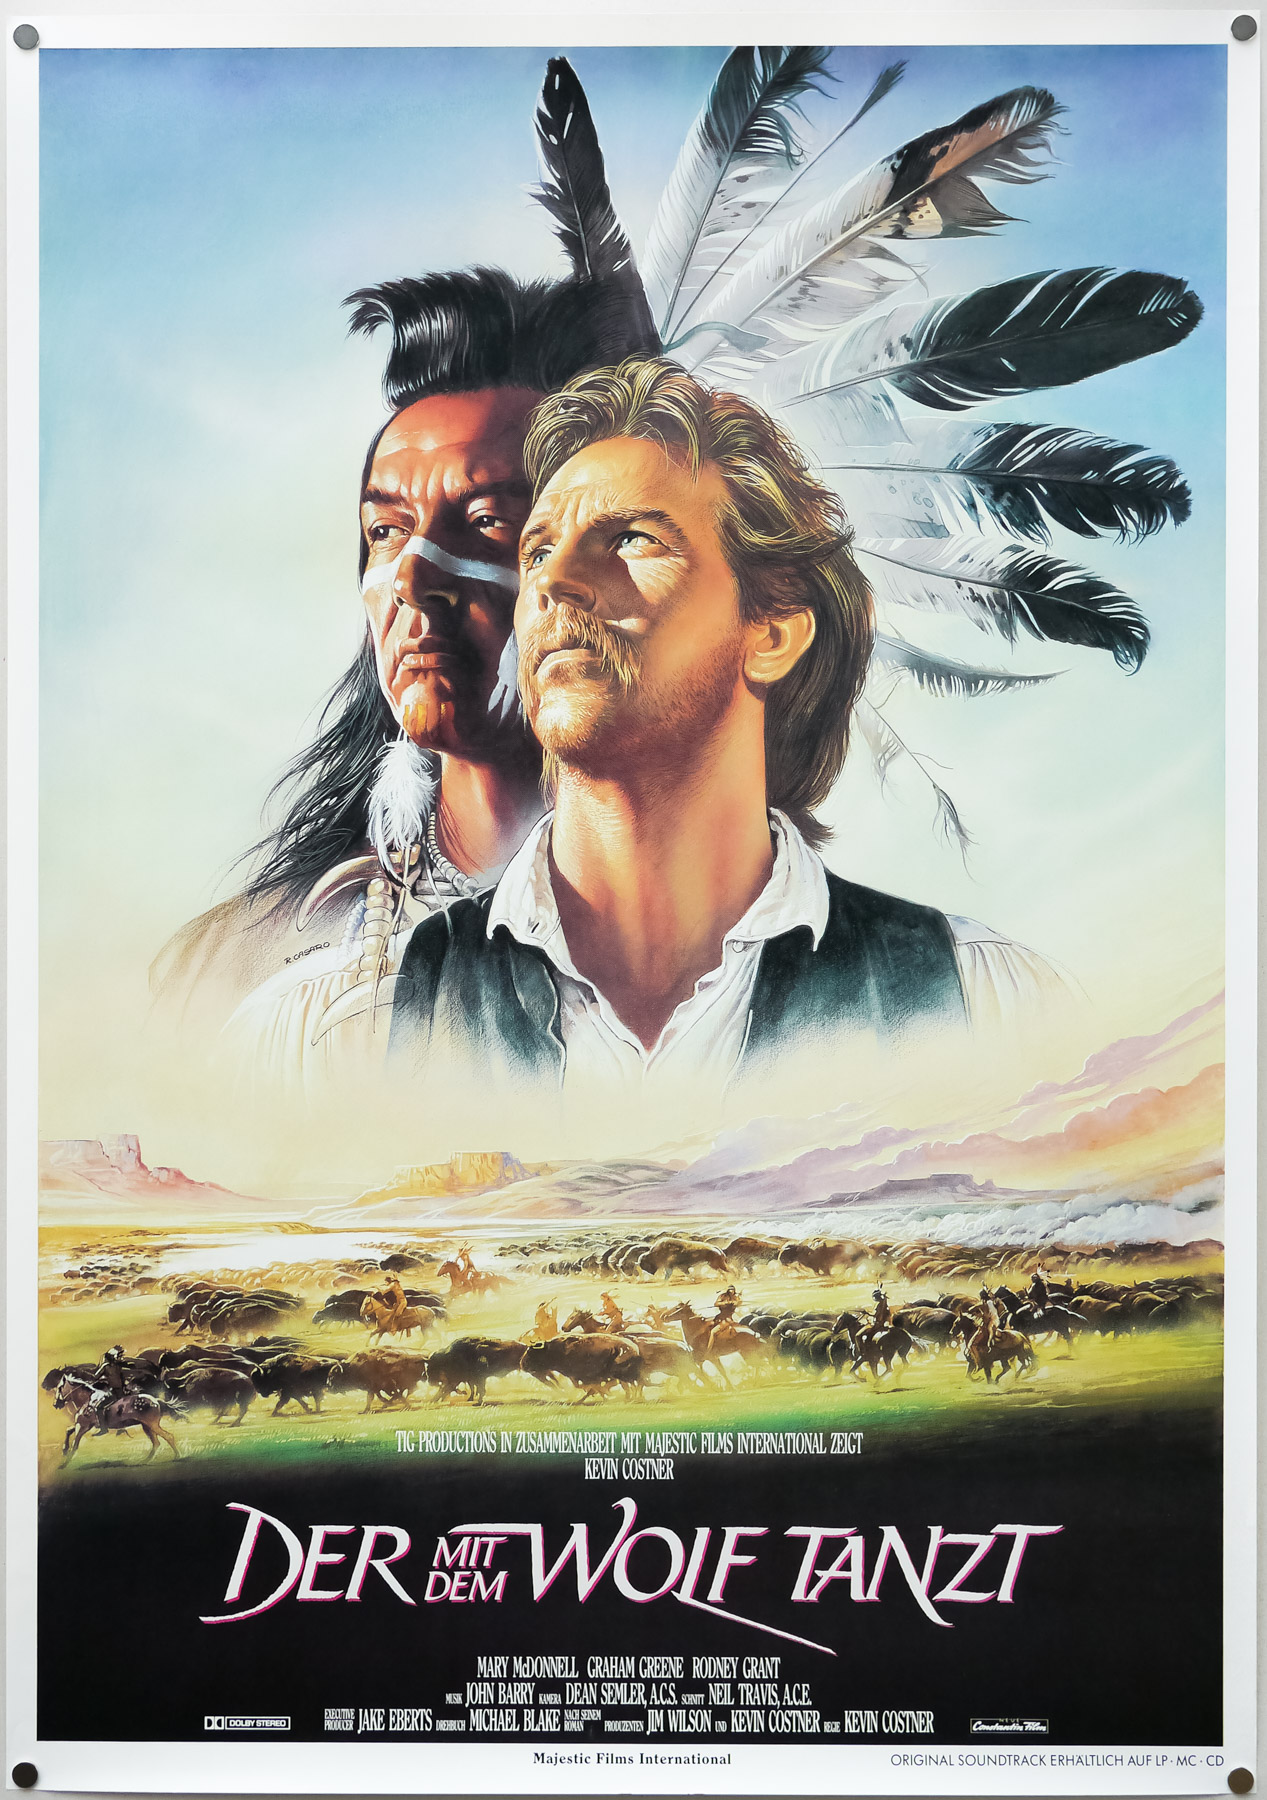 The German poster for Dances With Wolves, designed and painted by Renato Casaro, 1990